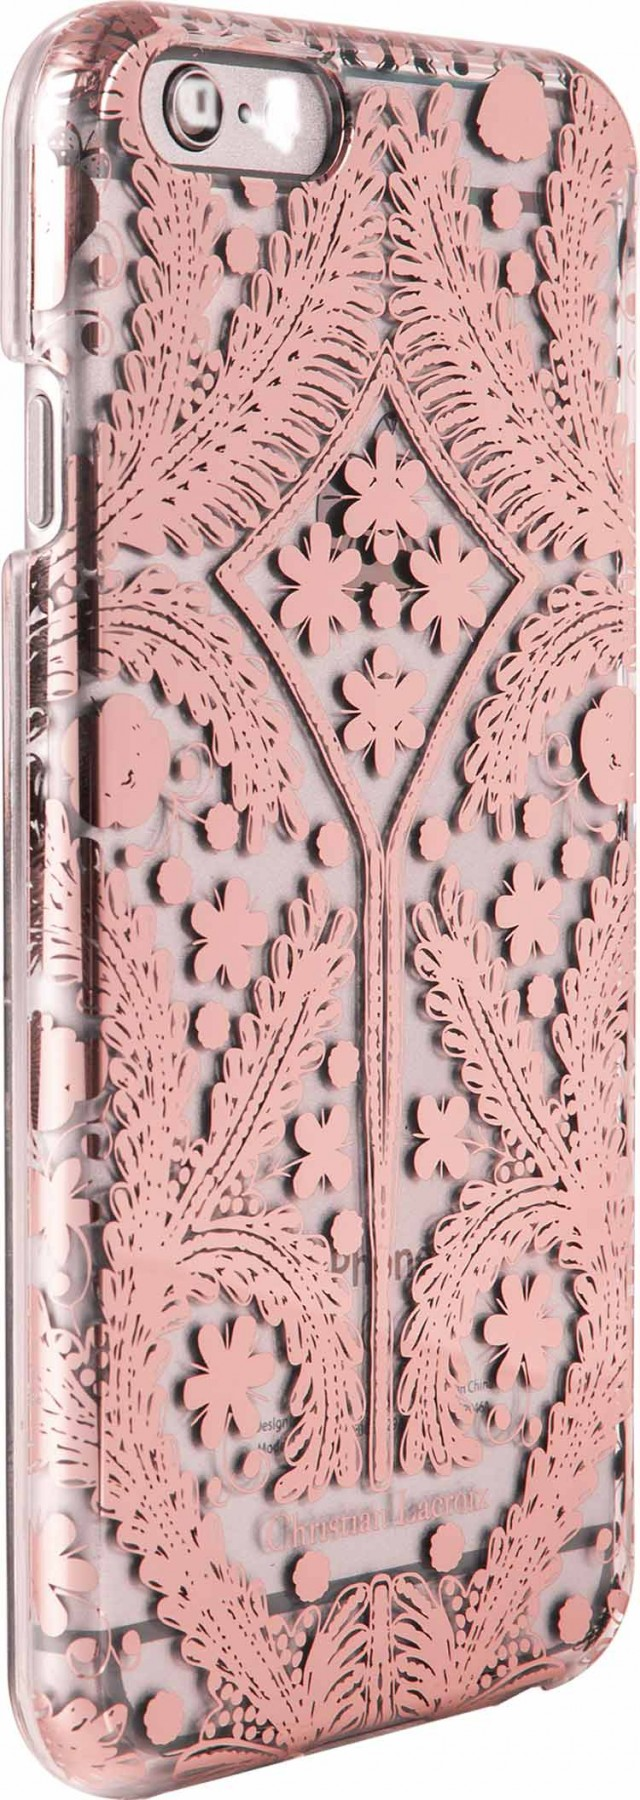 "CHRISTIAN LACROIX Paseo"" (Pink metallic)"" – Immagine"